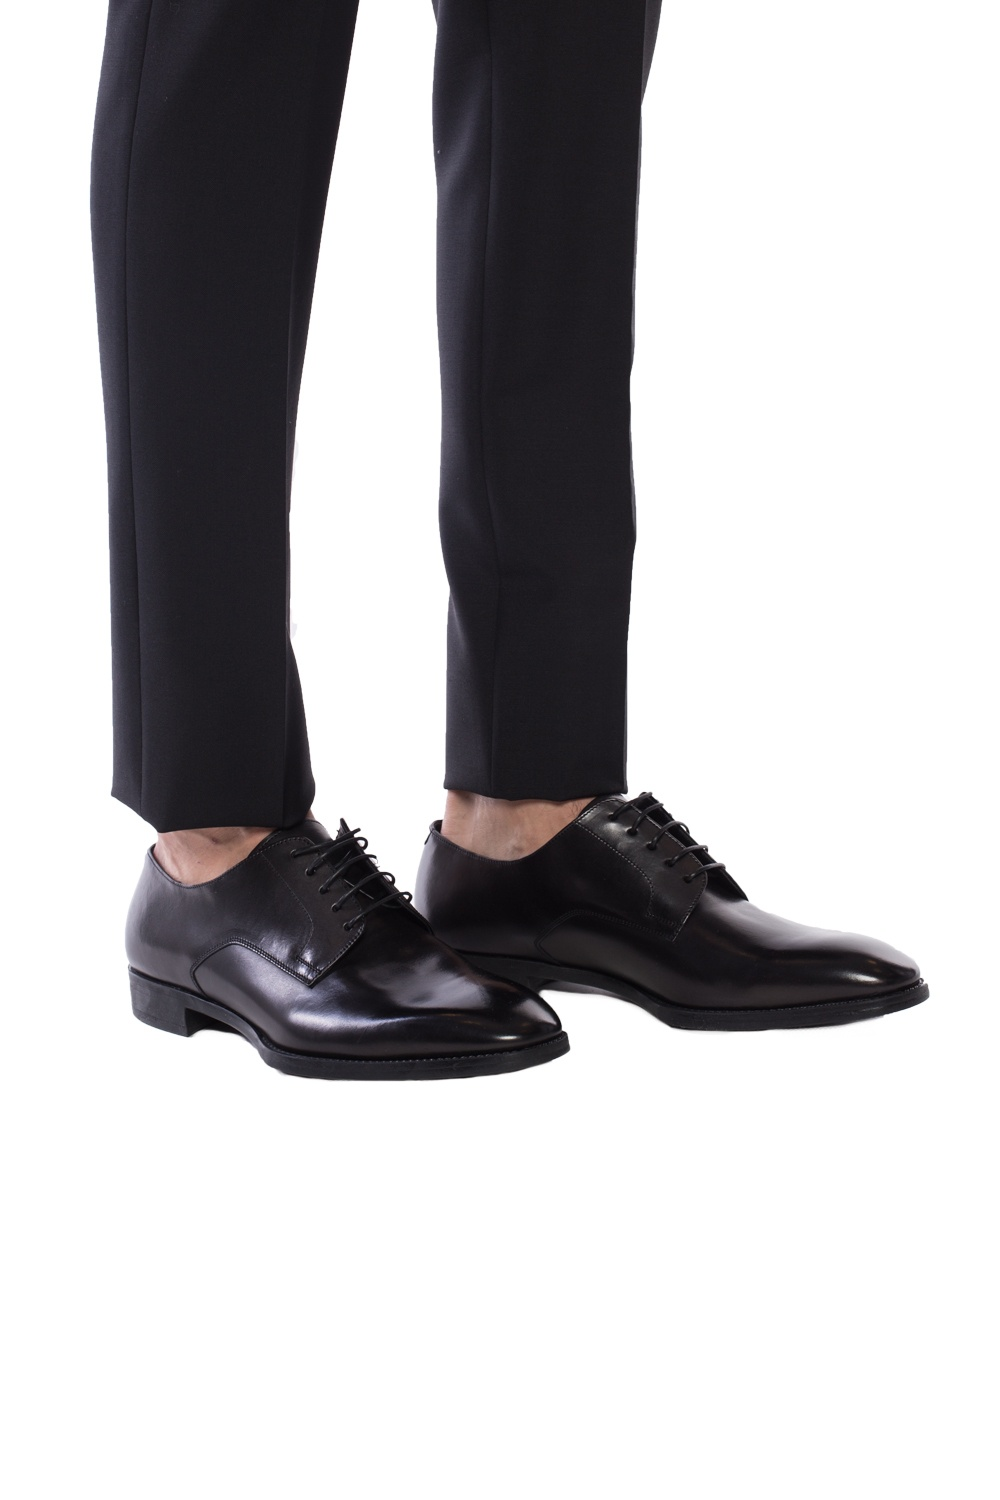 Giorgio Armani Derby shoes